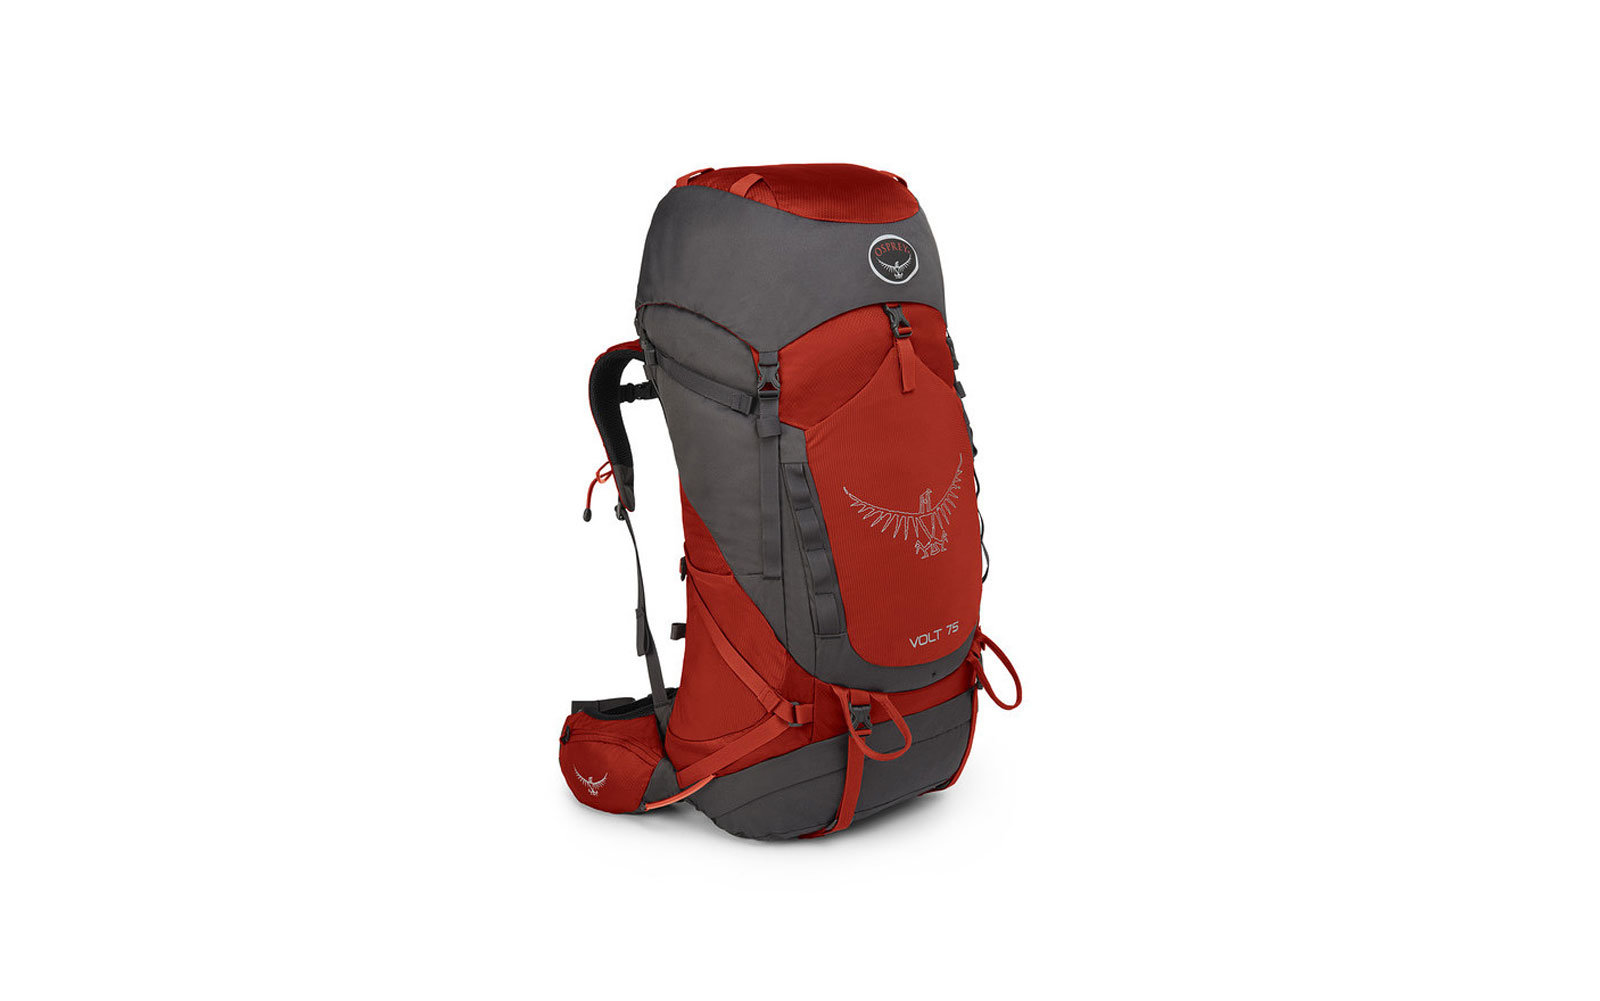 The Best Hiking Backpacks for Travelers | Travel + Leisure